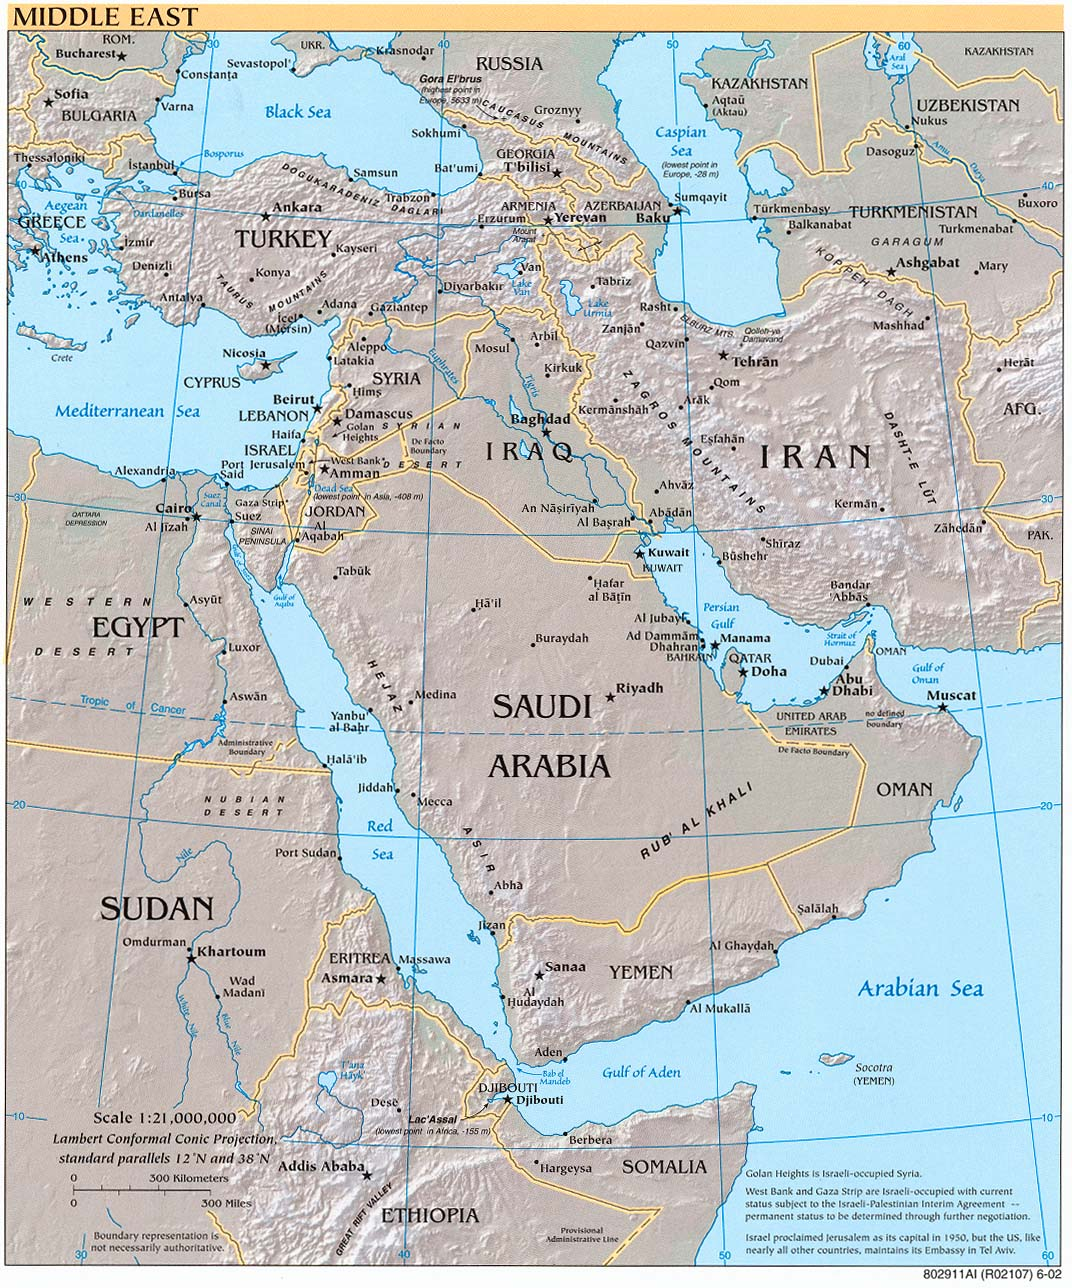 Middle East physical map 2002